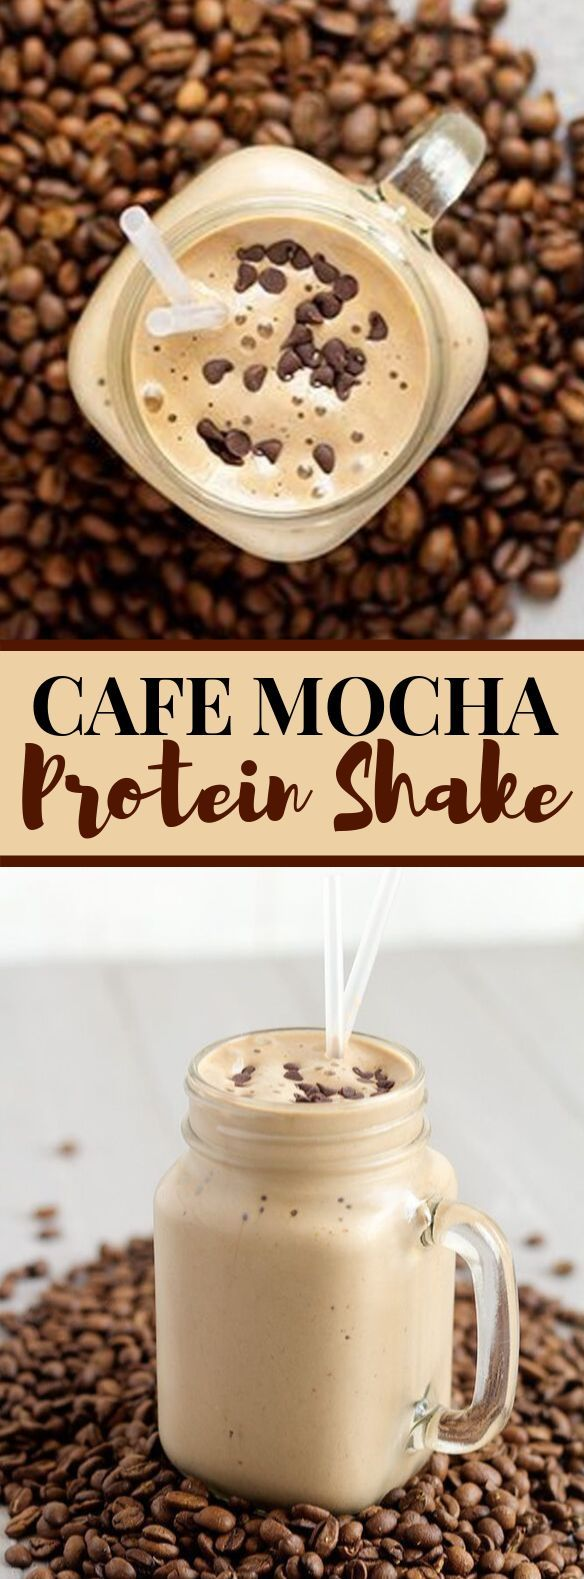 Cafe Mocha Protein Shake #drinks #smoothies #proteinshakes